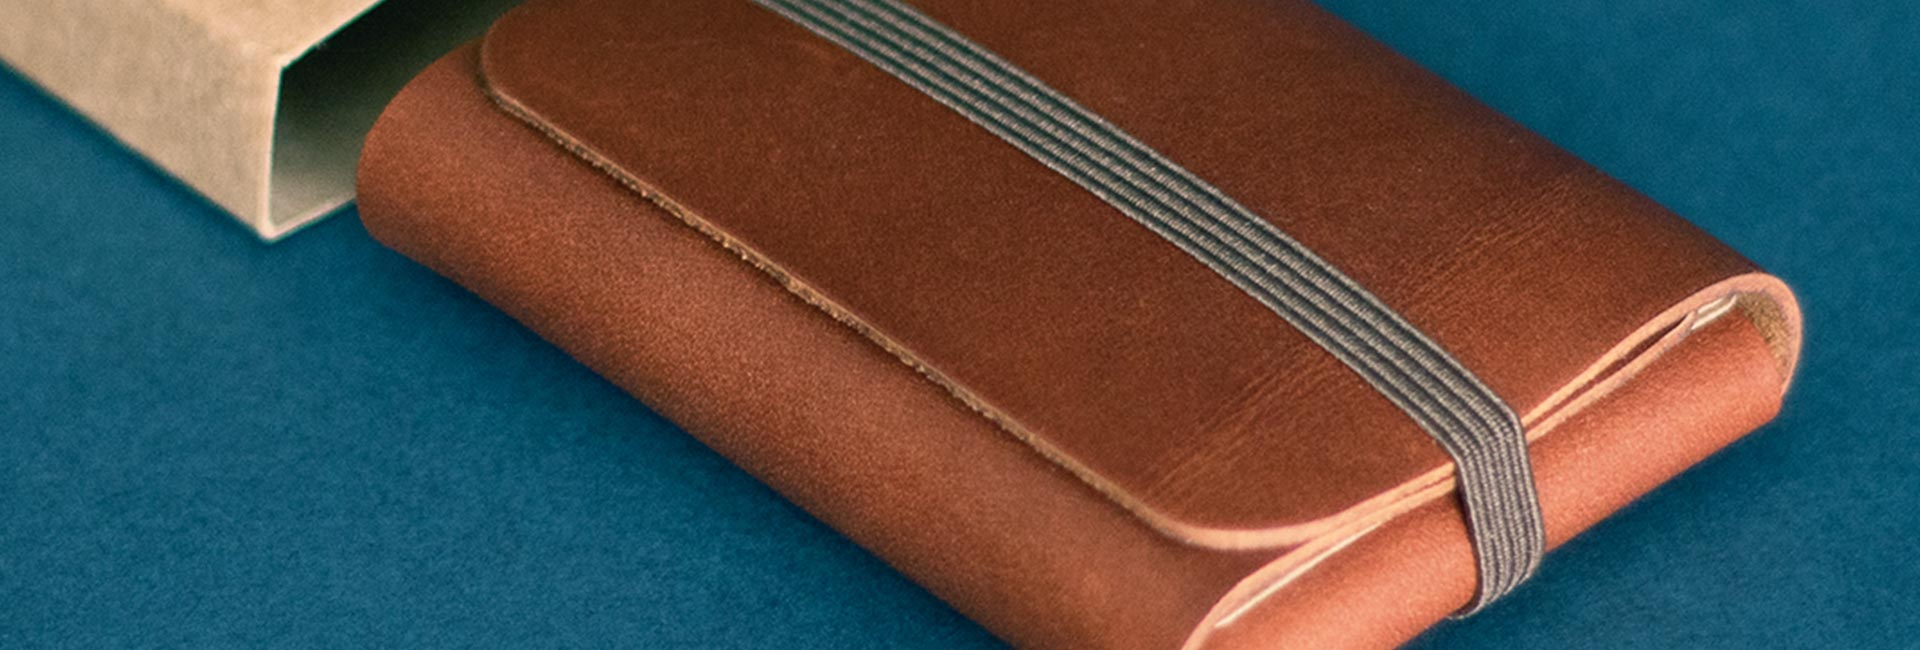 Read more about the article Photography – Singular leather wallet